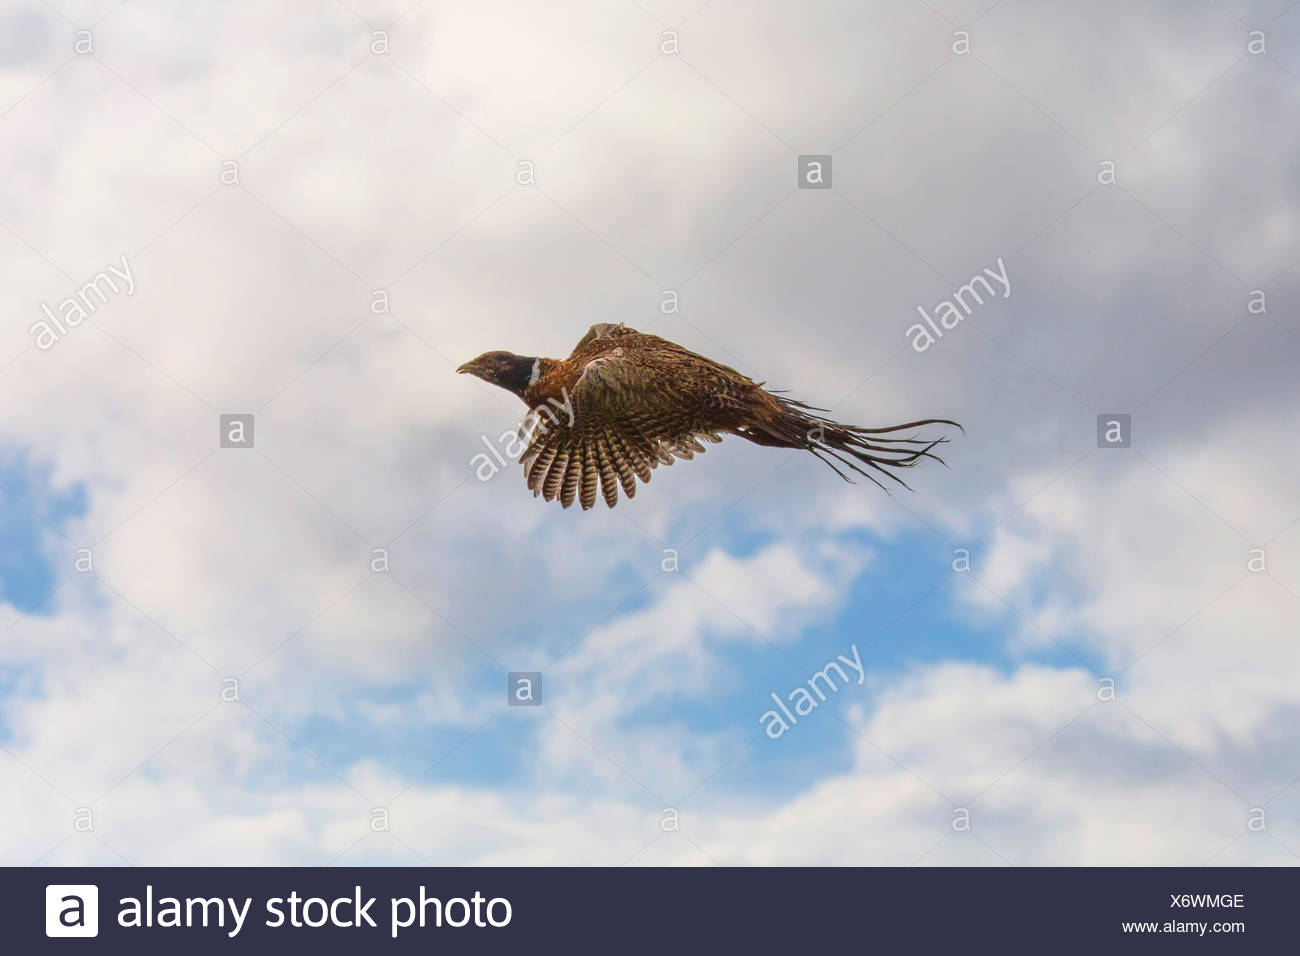 common pheasant, Caucasus Pheasant, Caucasian Pheasant (Phasianus colchicus), flying in the sky, Germany, Bavaria, Niederbayern, Lower Bavaria - Stock Image